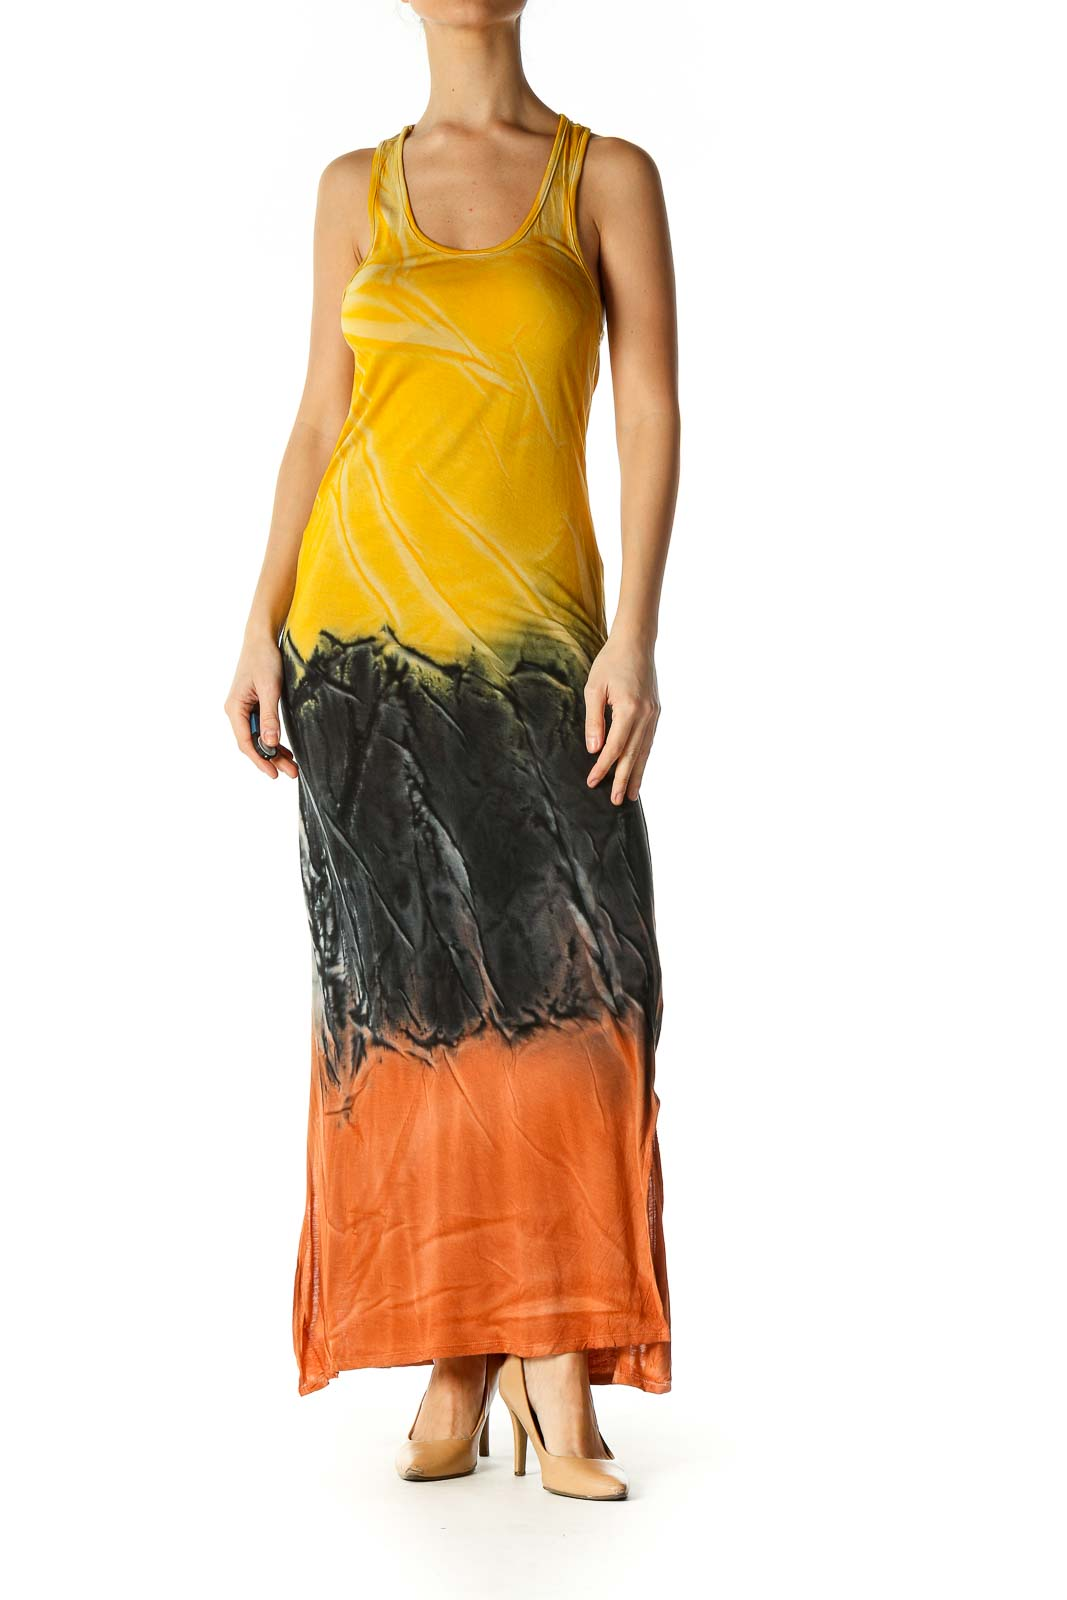 Yellow Tie Dye Casual Dress Front